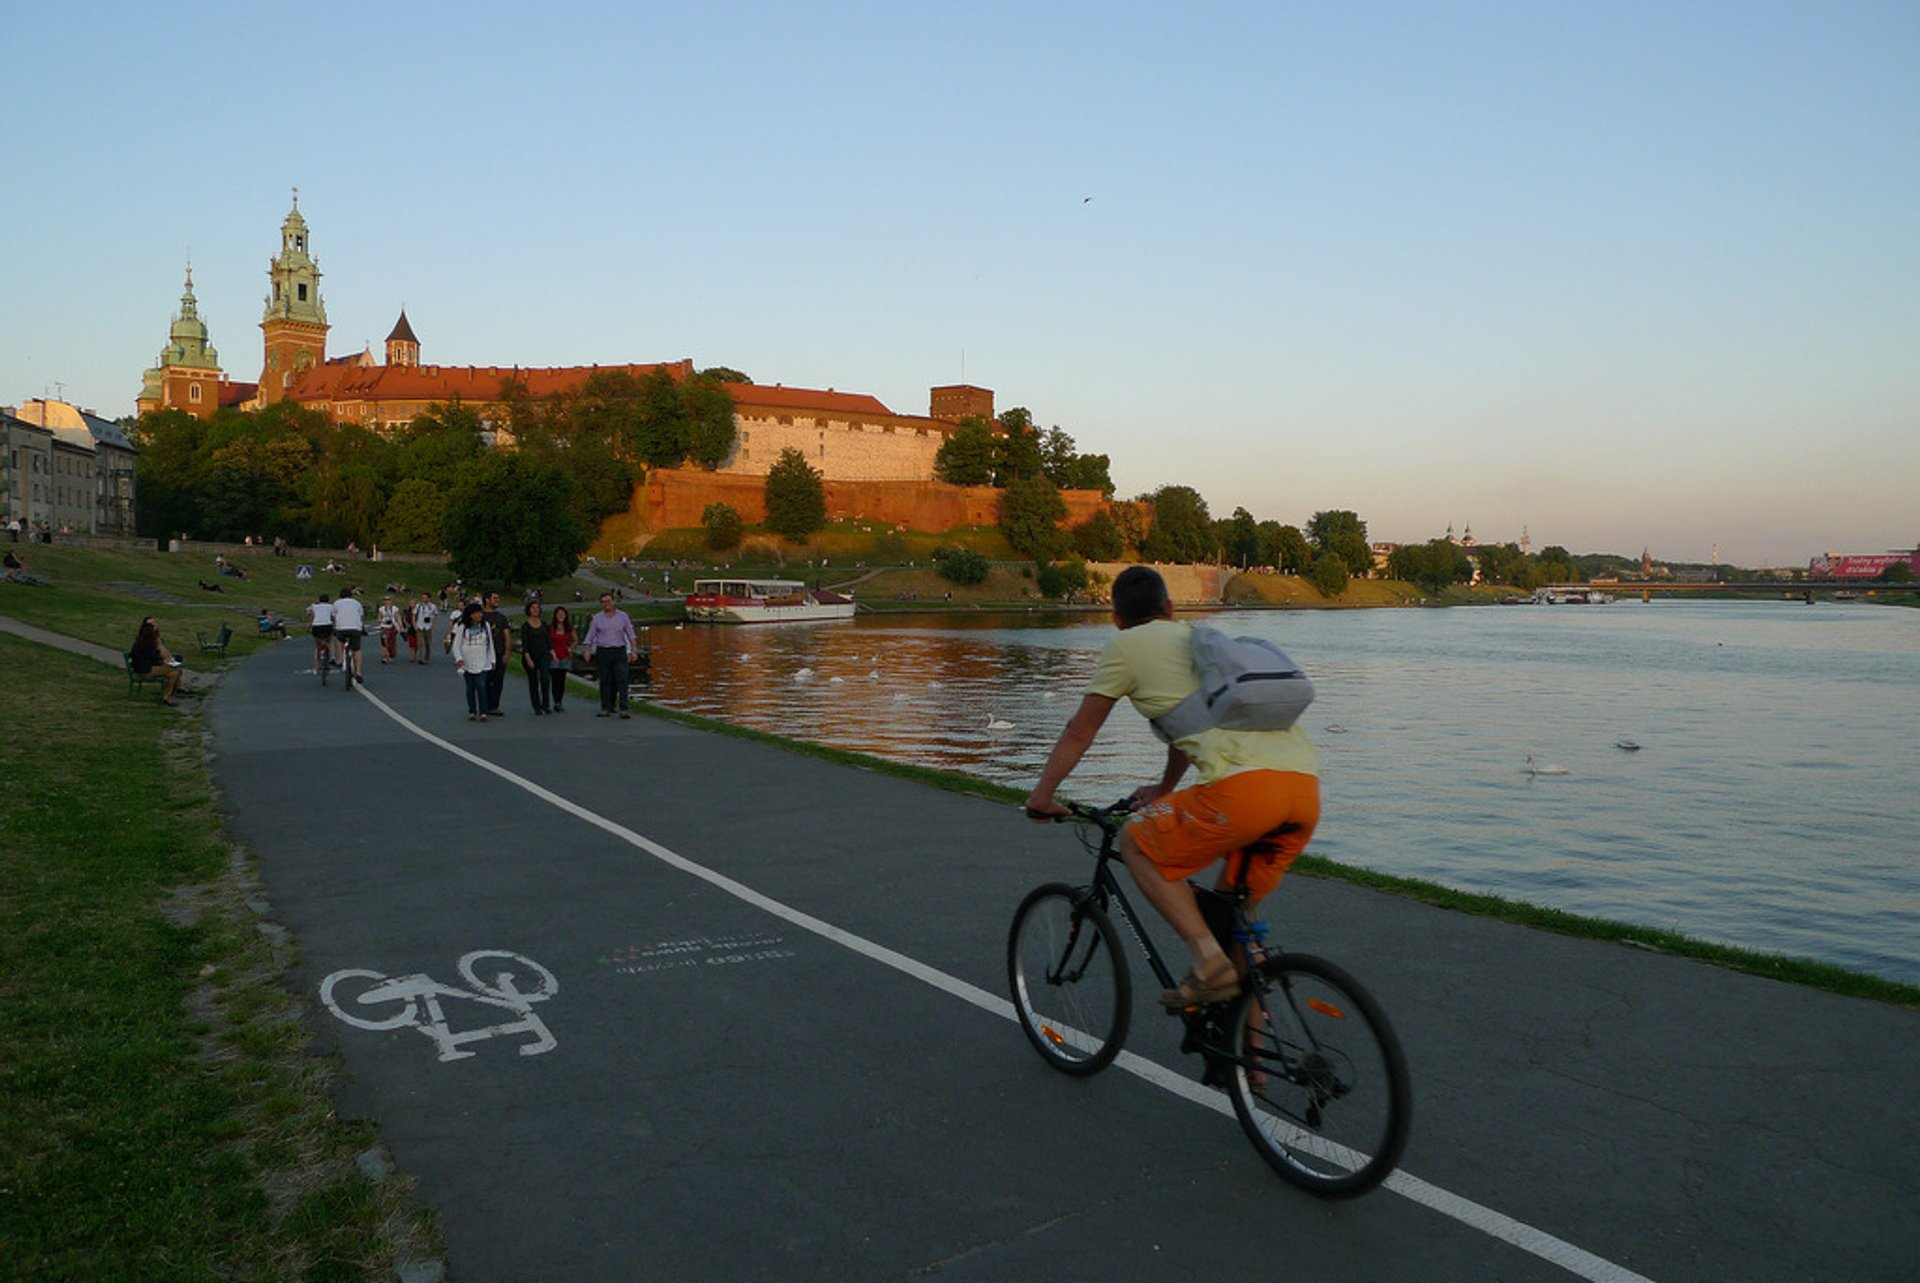 Cycling in Bulwar Kurlandzki on Vistula River close to Krakow Castle 2020